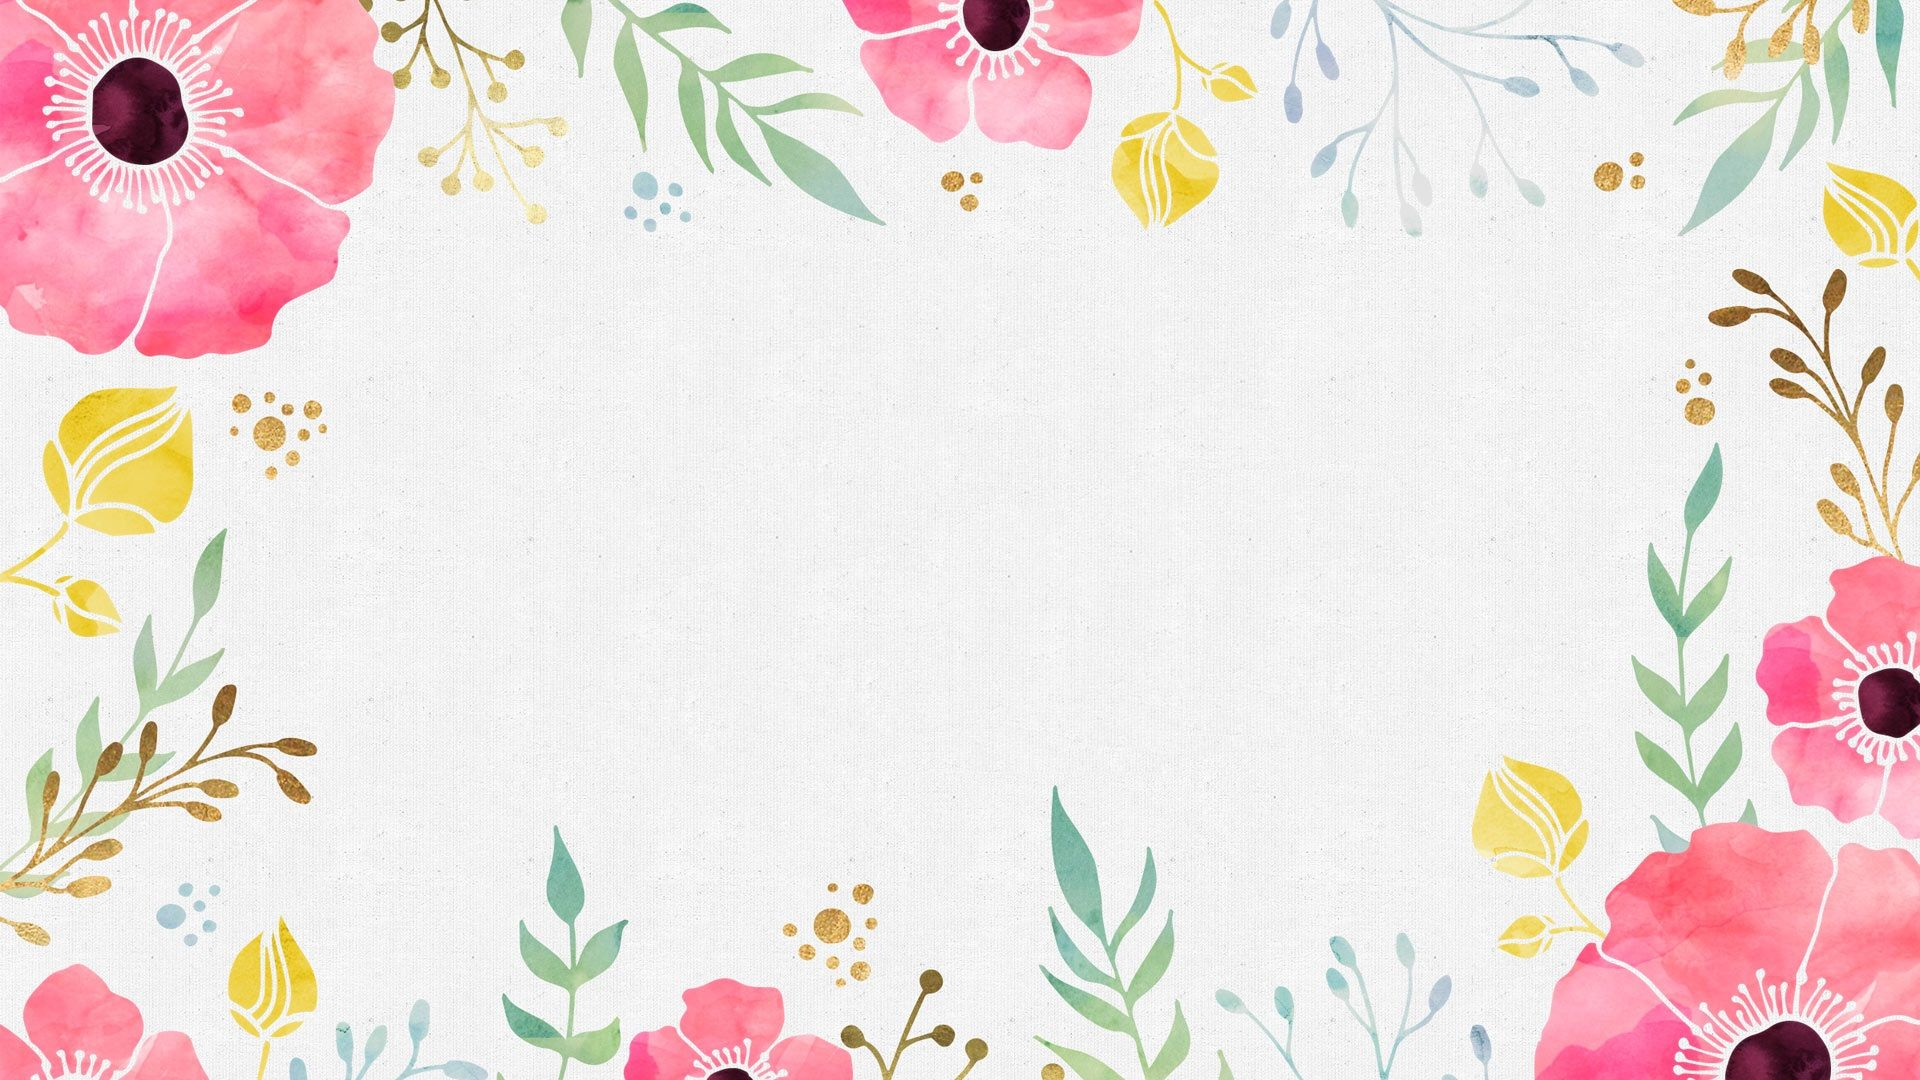 Watercolor Flowers. Desktop Wallpaper